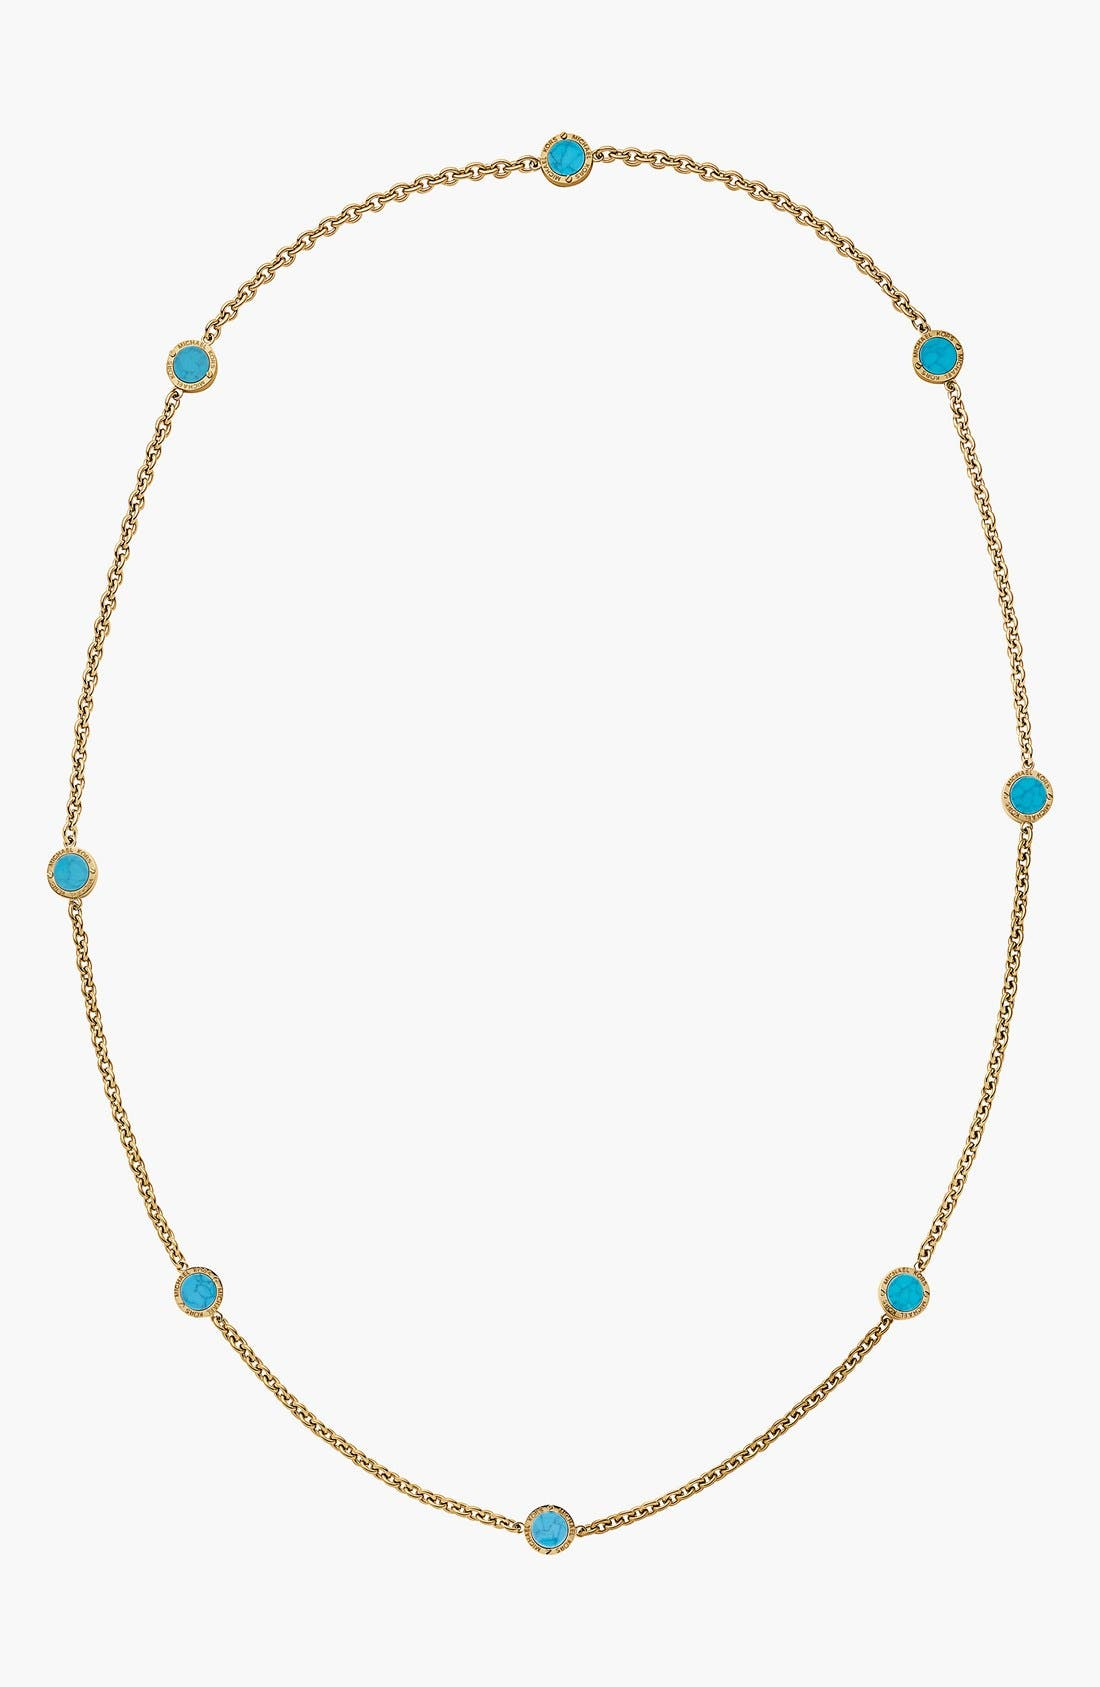 Main Image - Michael Kors 'Modern Mix' Long Station Necklace